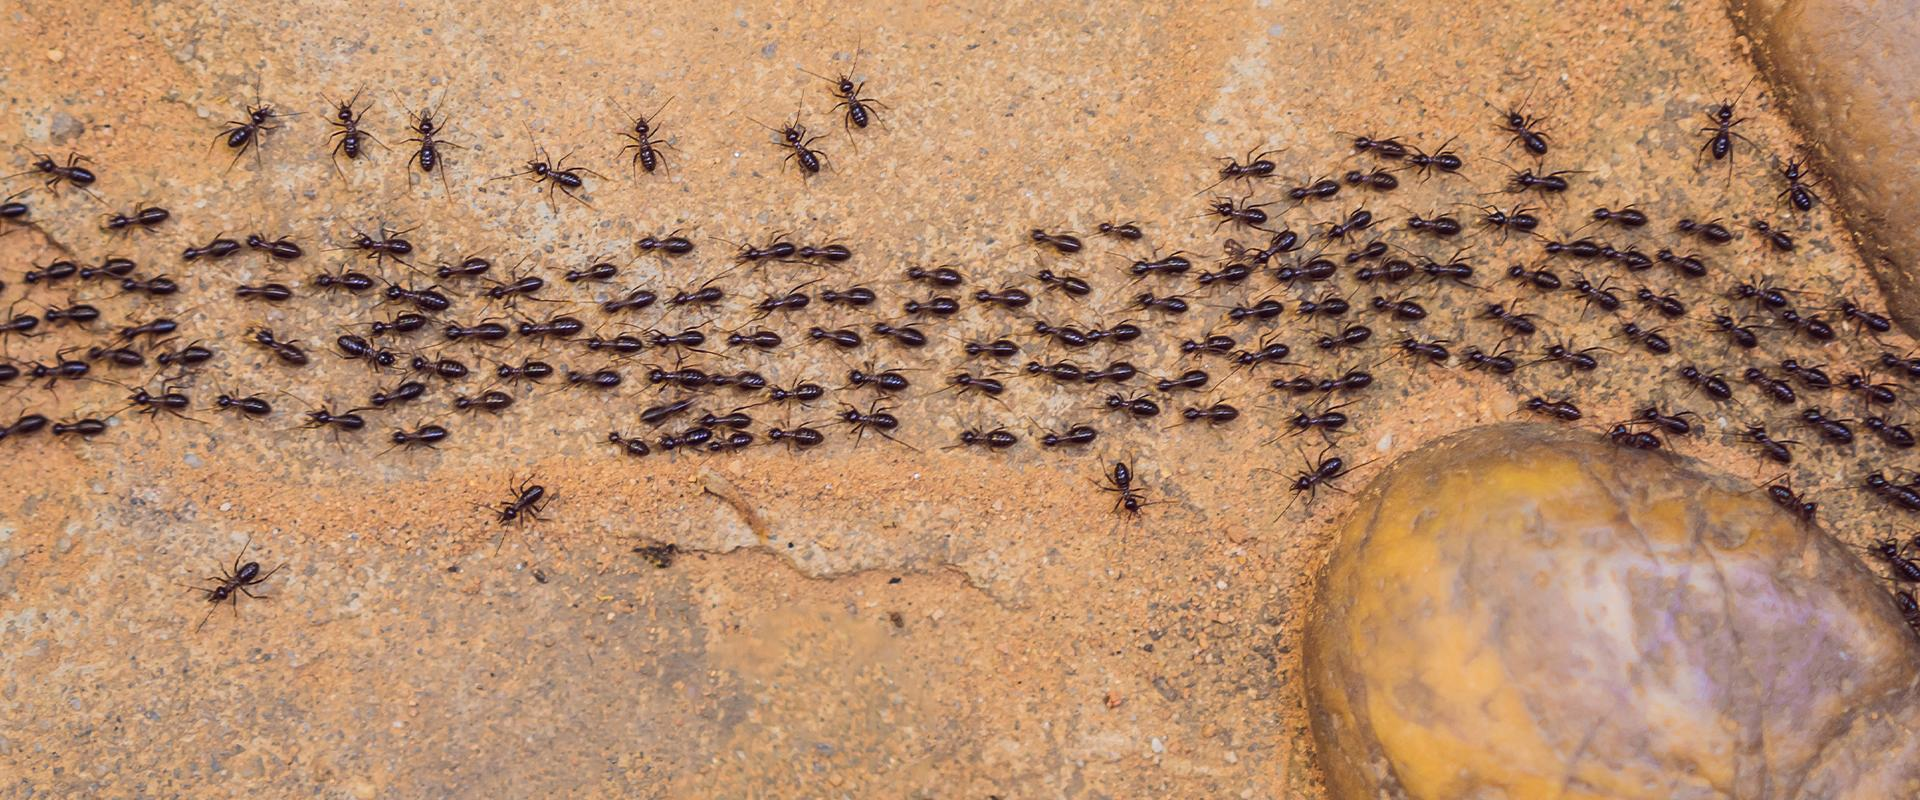 trail of ants on the dirt